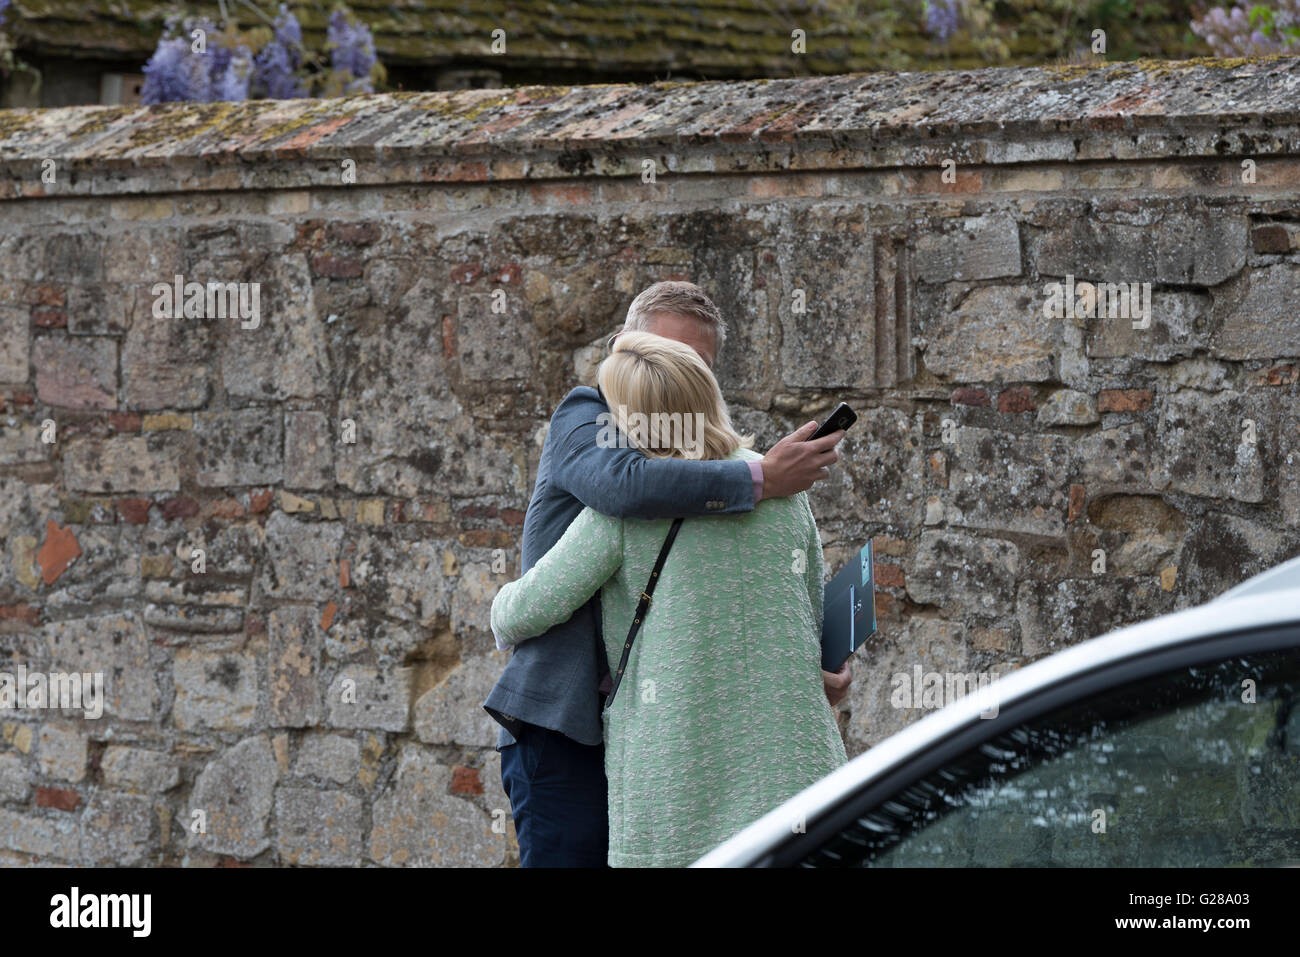 Affectionate embrace in a public place Ely Cambridgeshire England UK - Stock Image